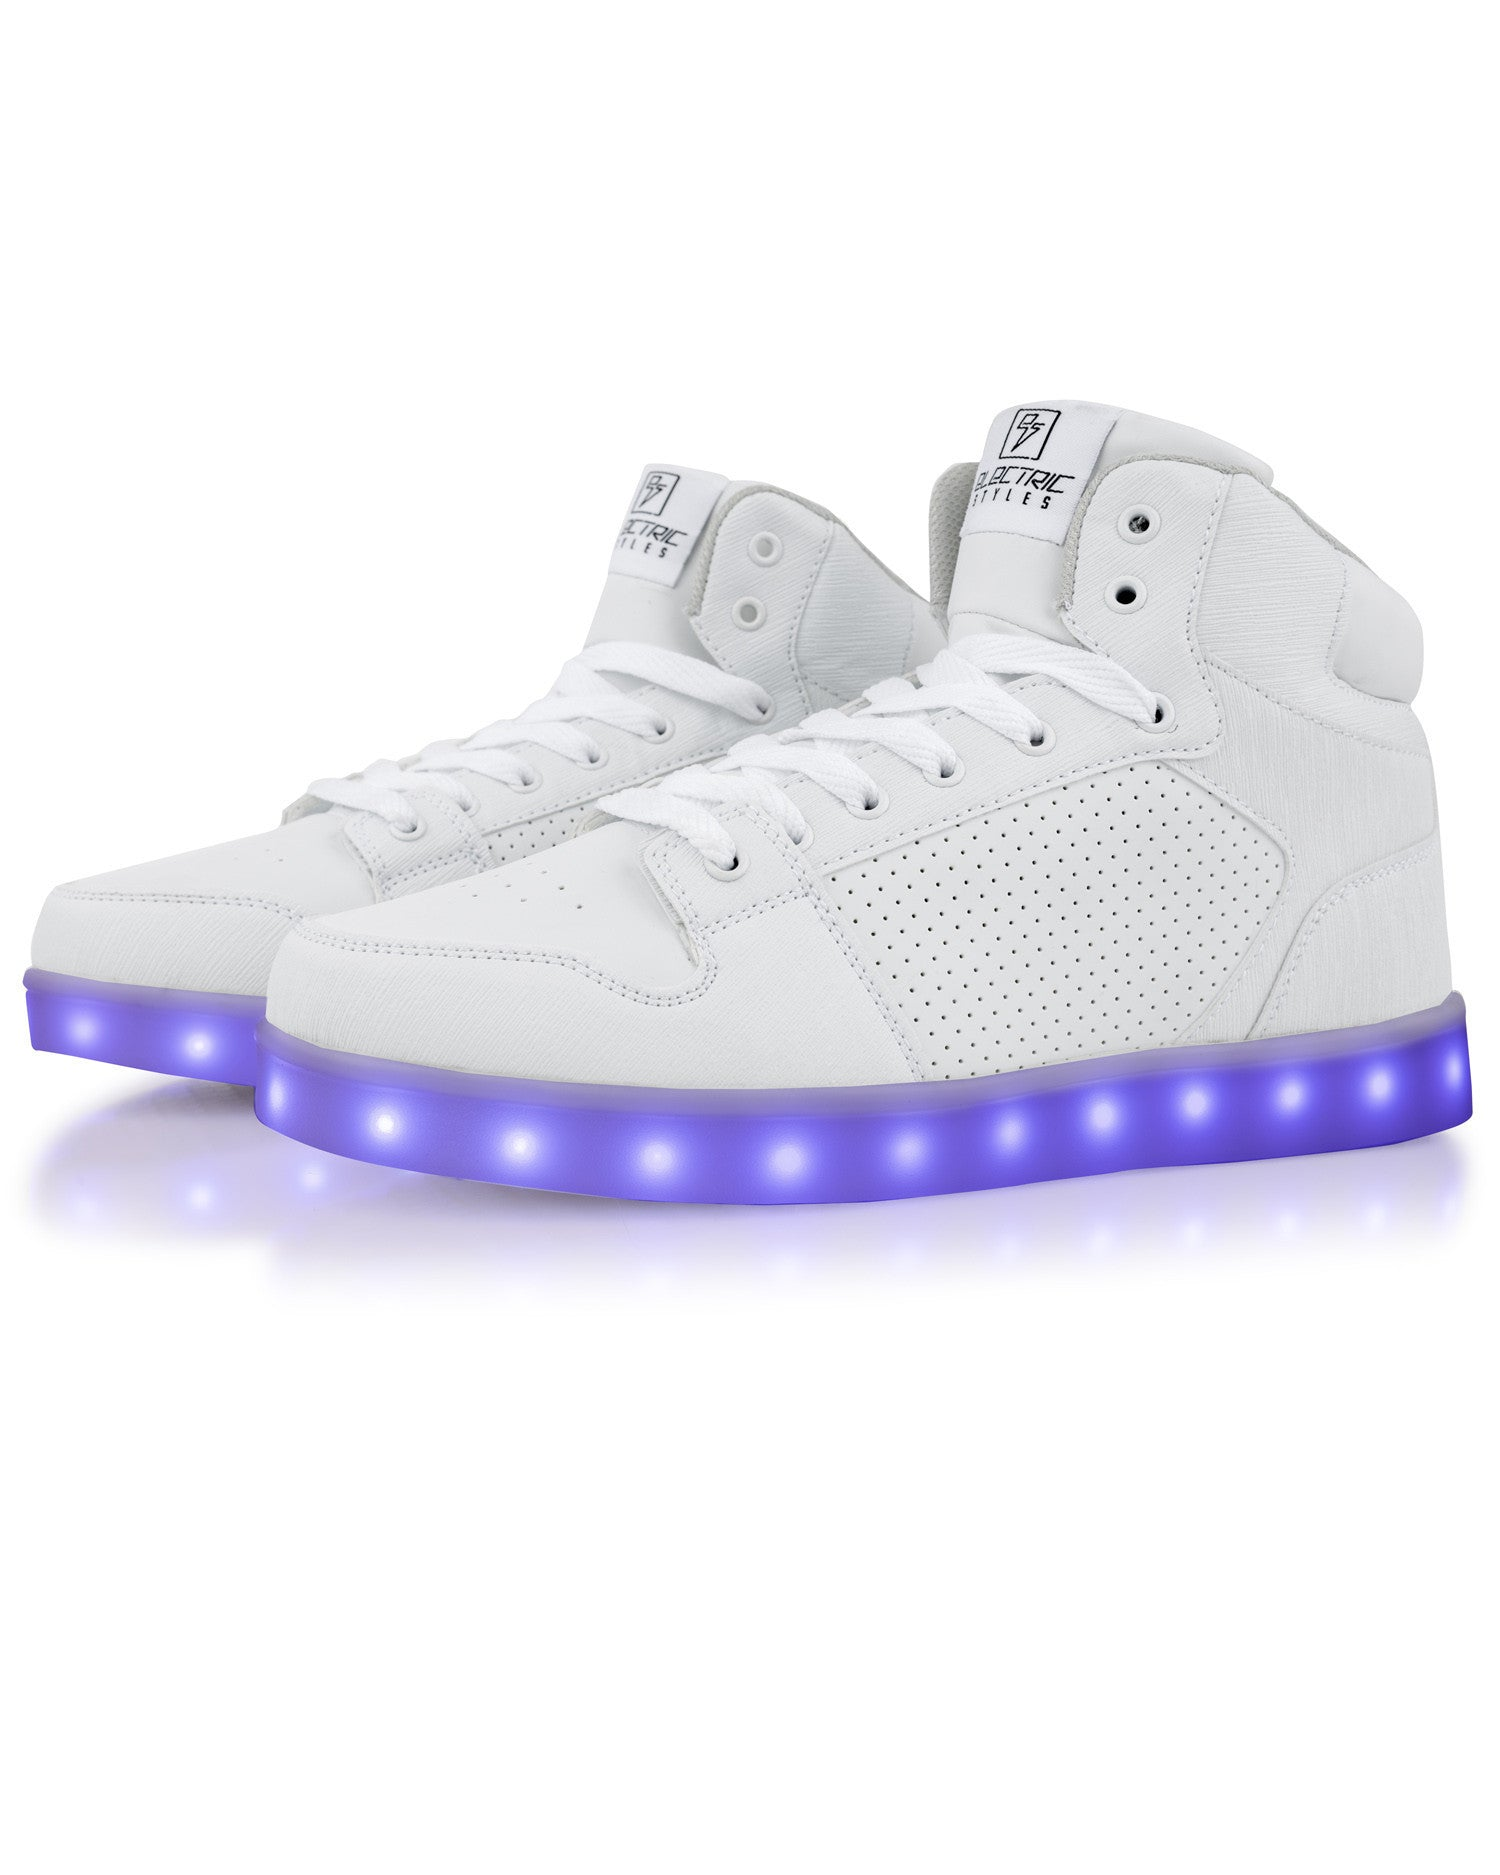 J-Walker - Light Lynk Shoes ( White Leather ) - Electric Styles | World's Number 1 Light Up Shoe Store - {product_type}} -  - 4